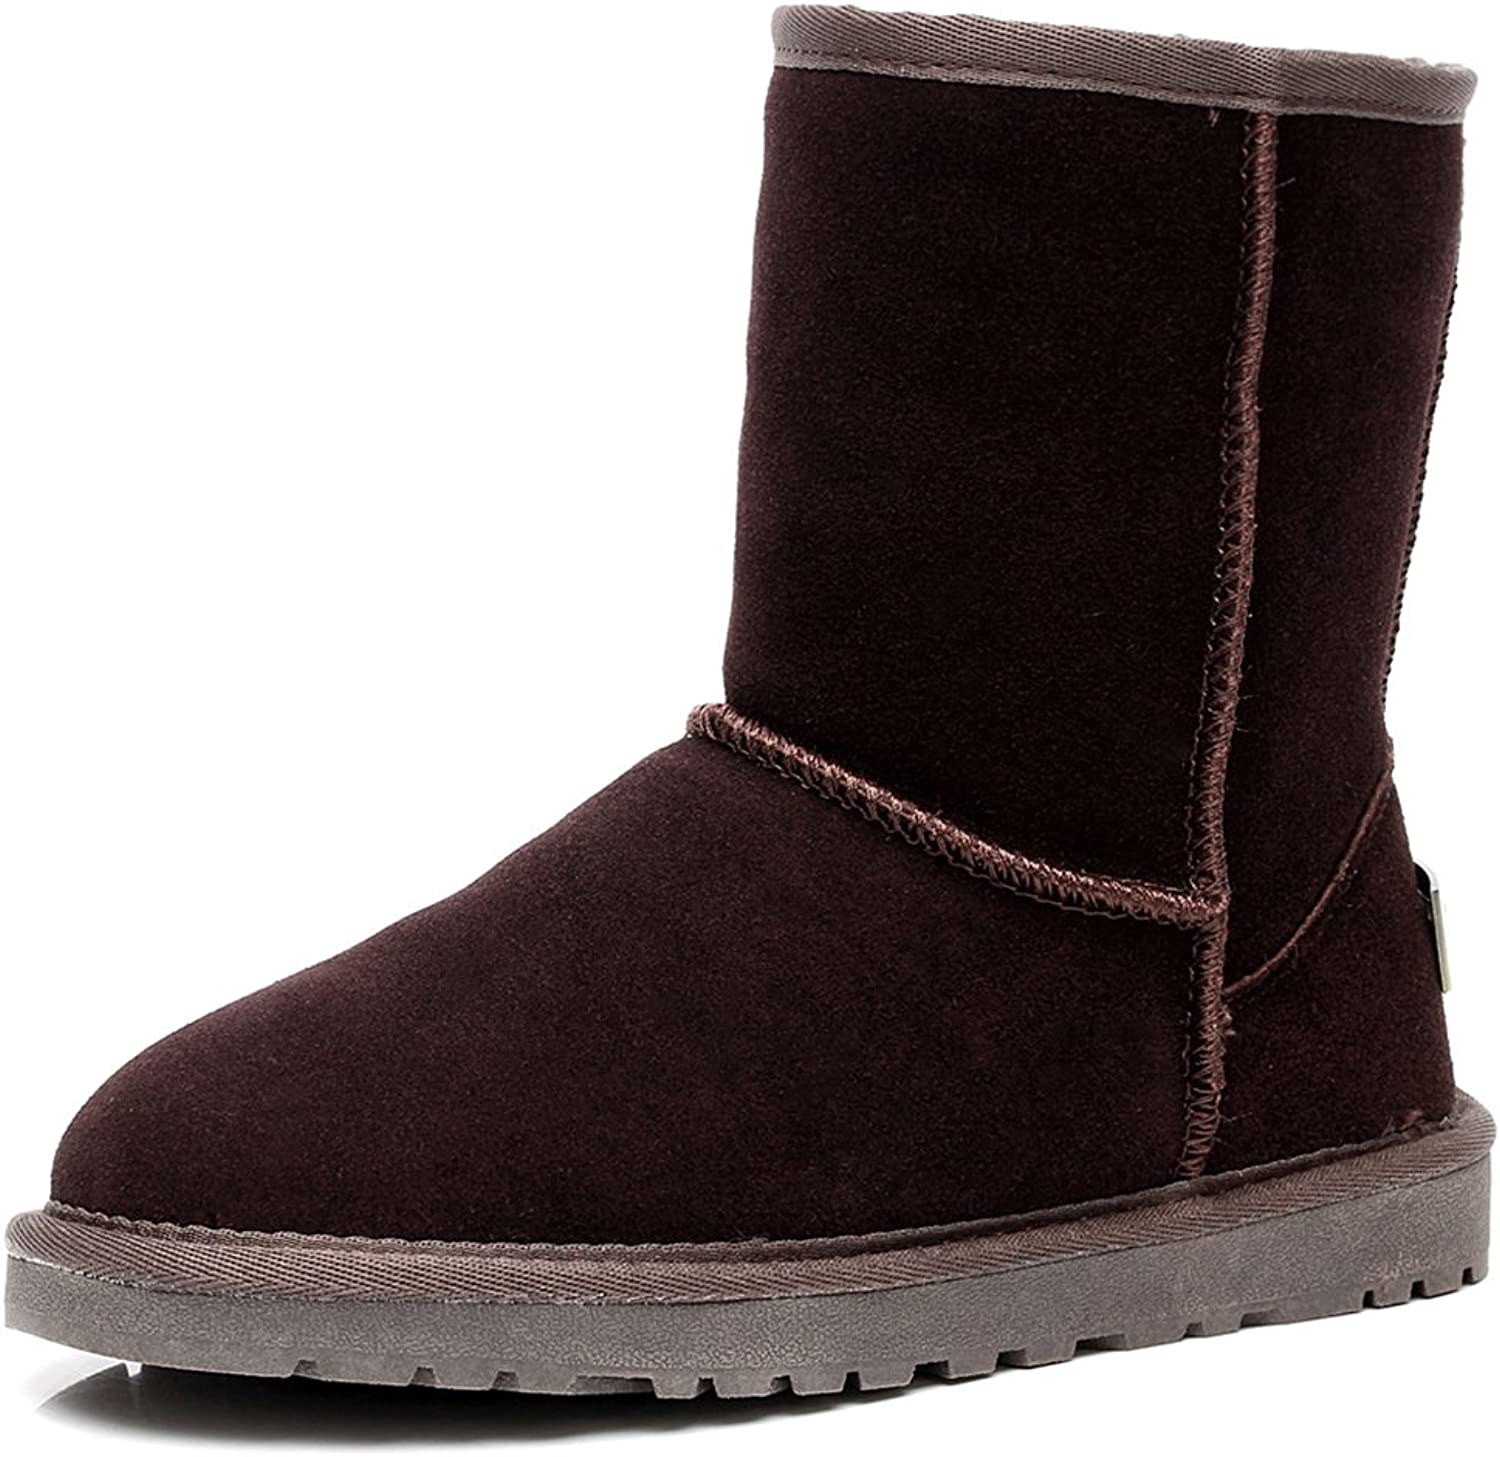 Rismart Women Classic Mid-Calf Faux Fur Lined Suede Snow Boots Many colors Available